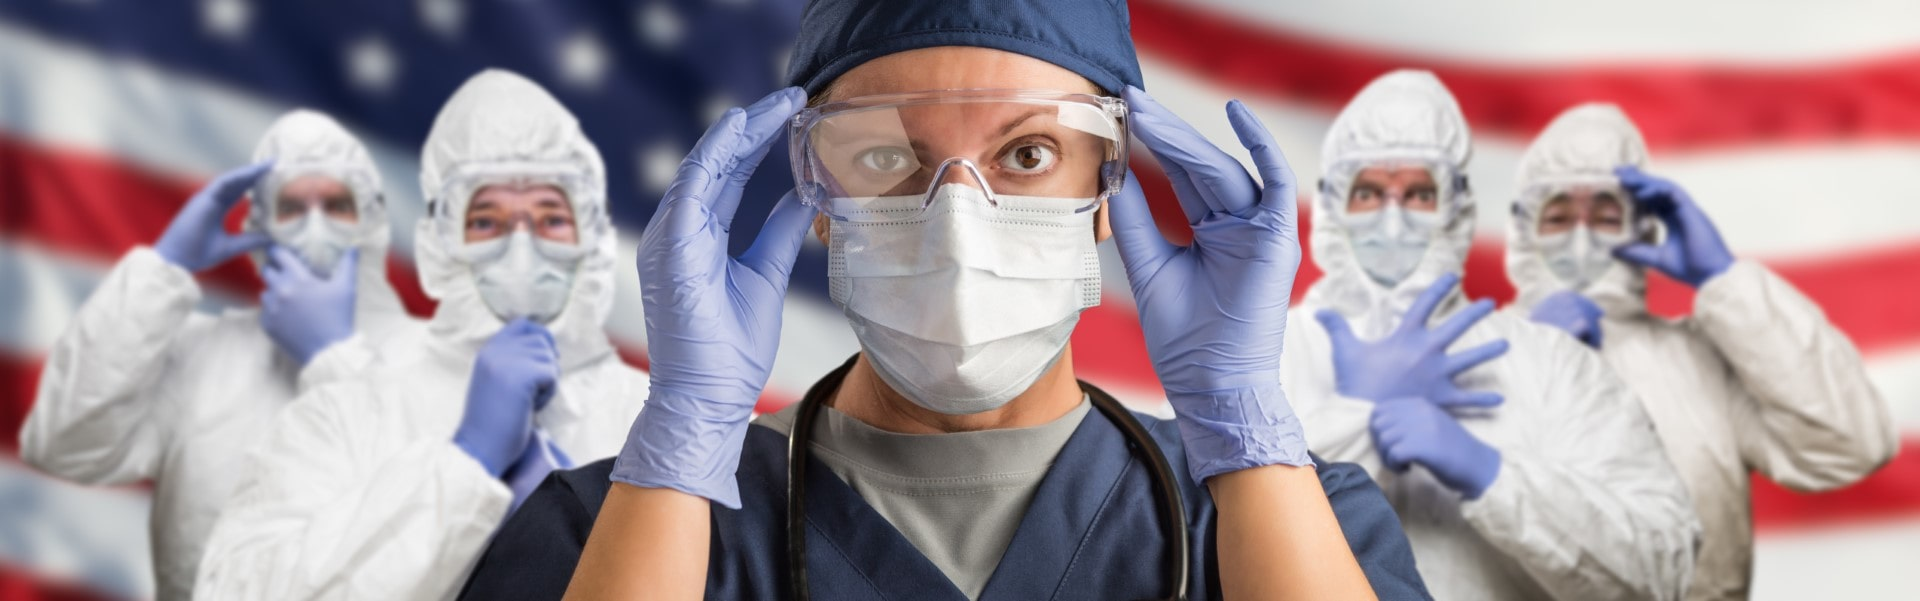 Doctors or Nurses Wearing Medical Personal Protective Equipment (PPE) Against The American Flag Banner.